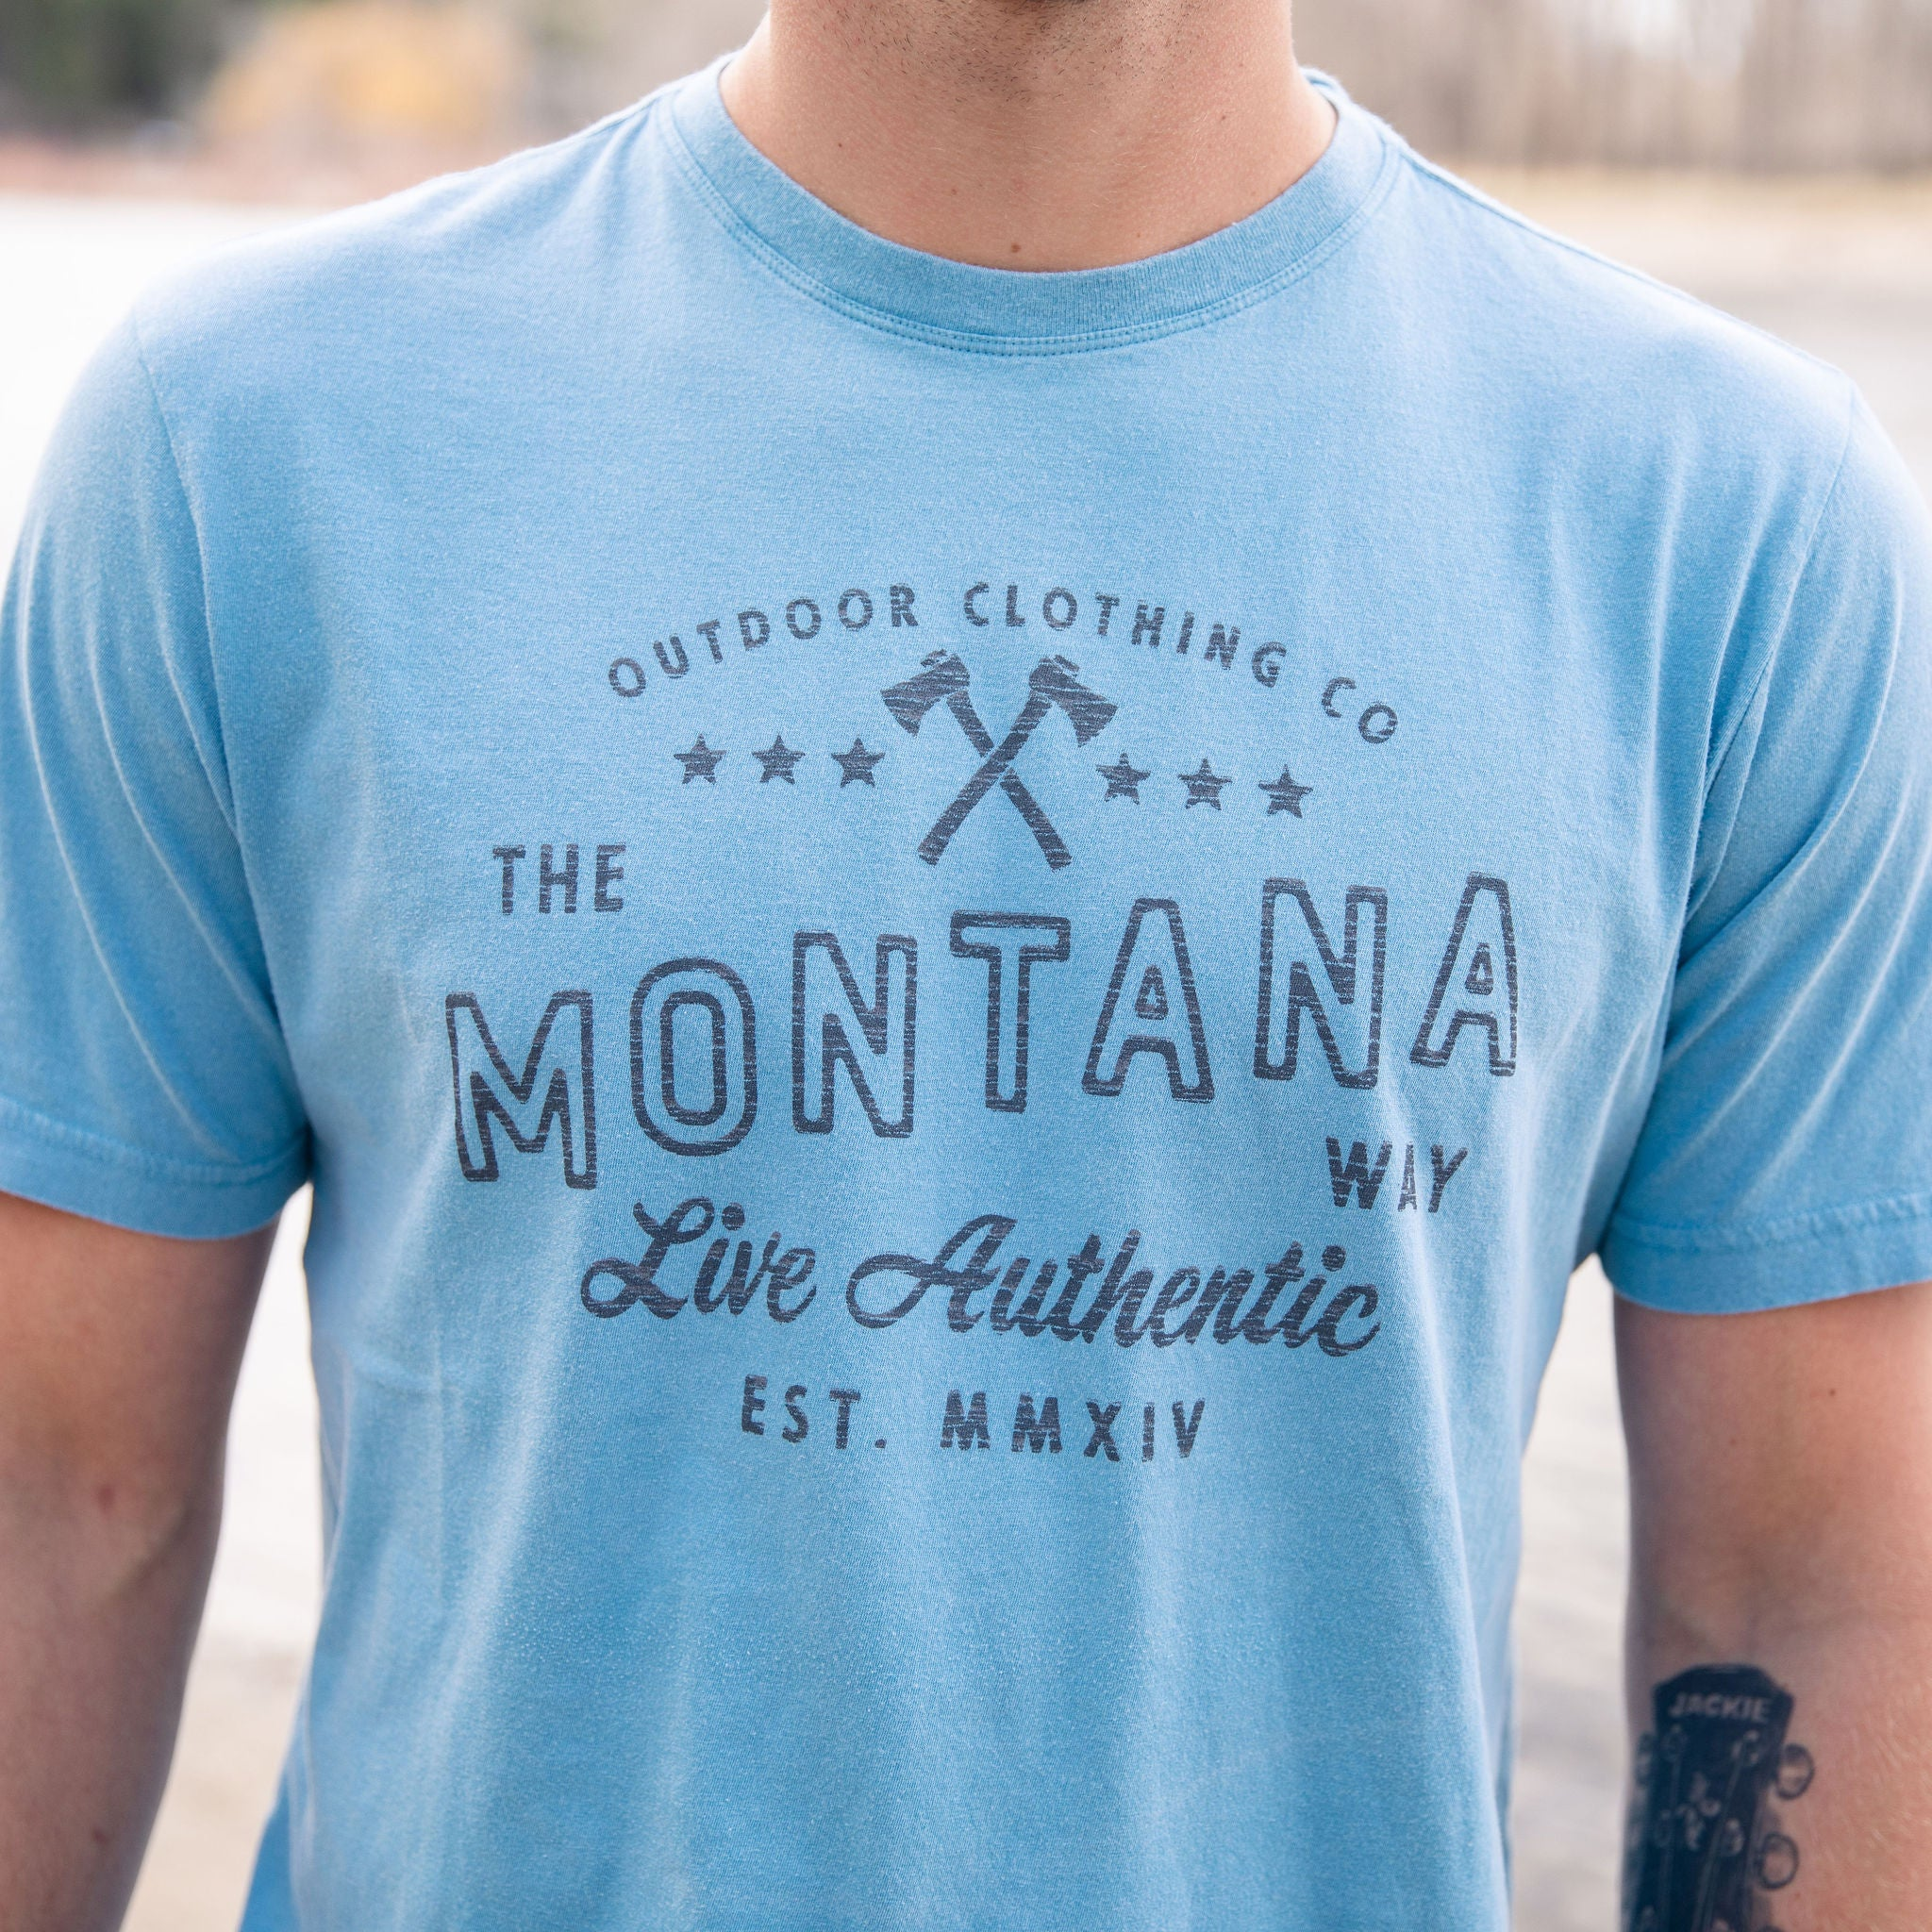 Est. MMXIV Vintage Tee in Bay Blue